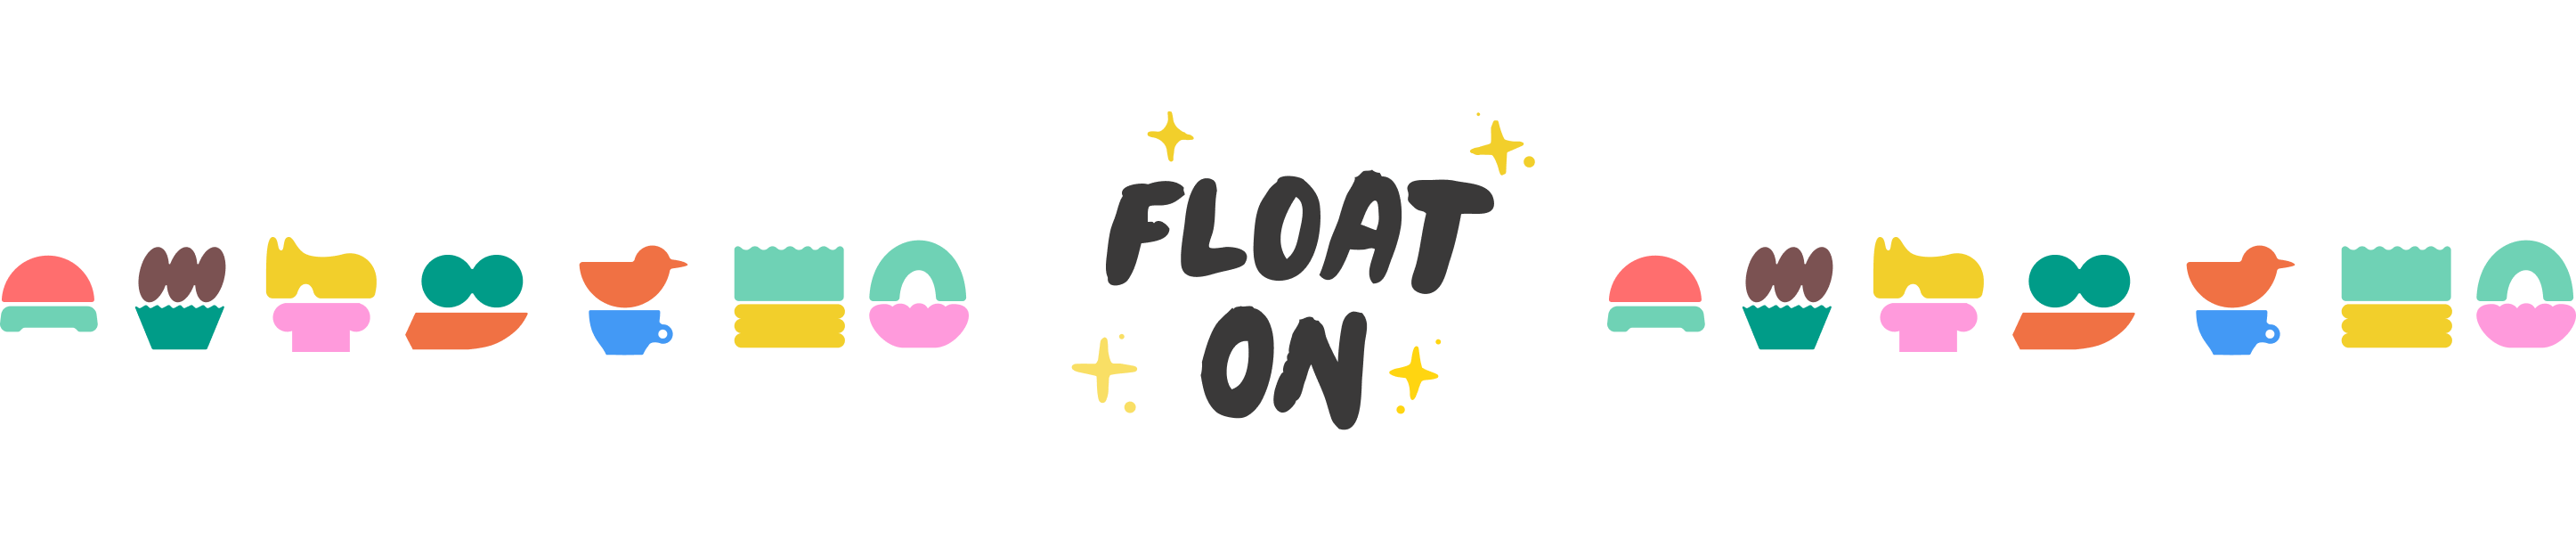 Float On